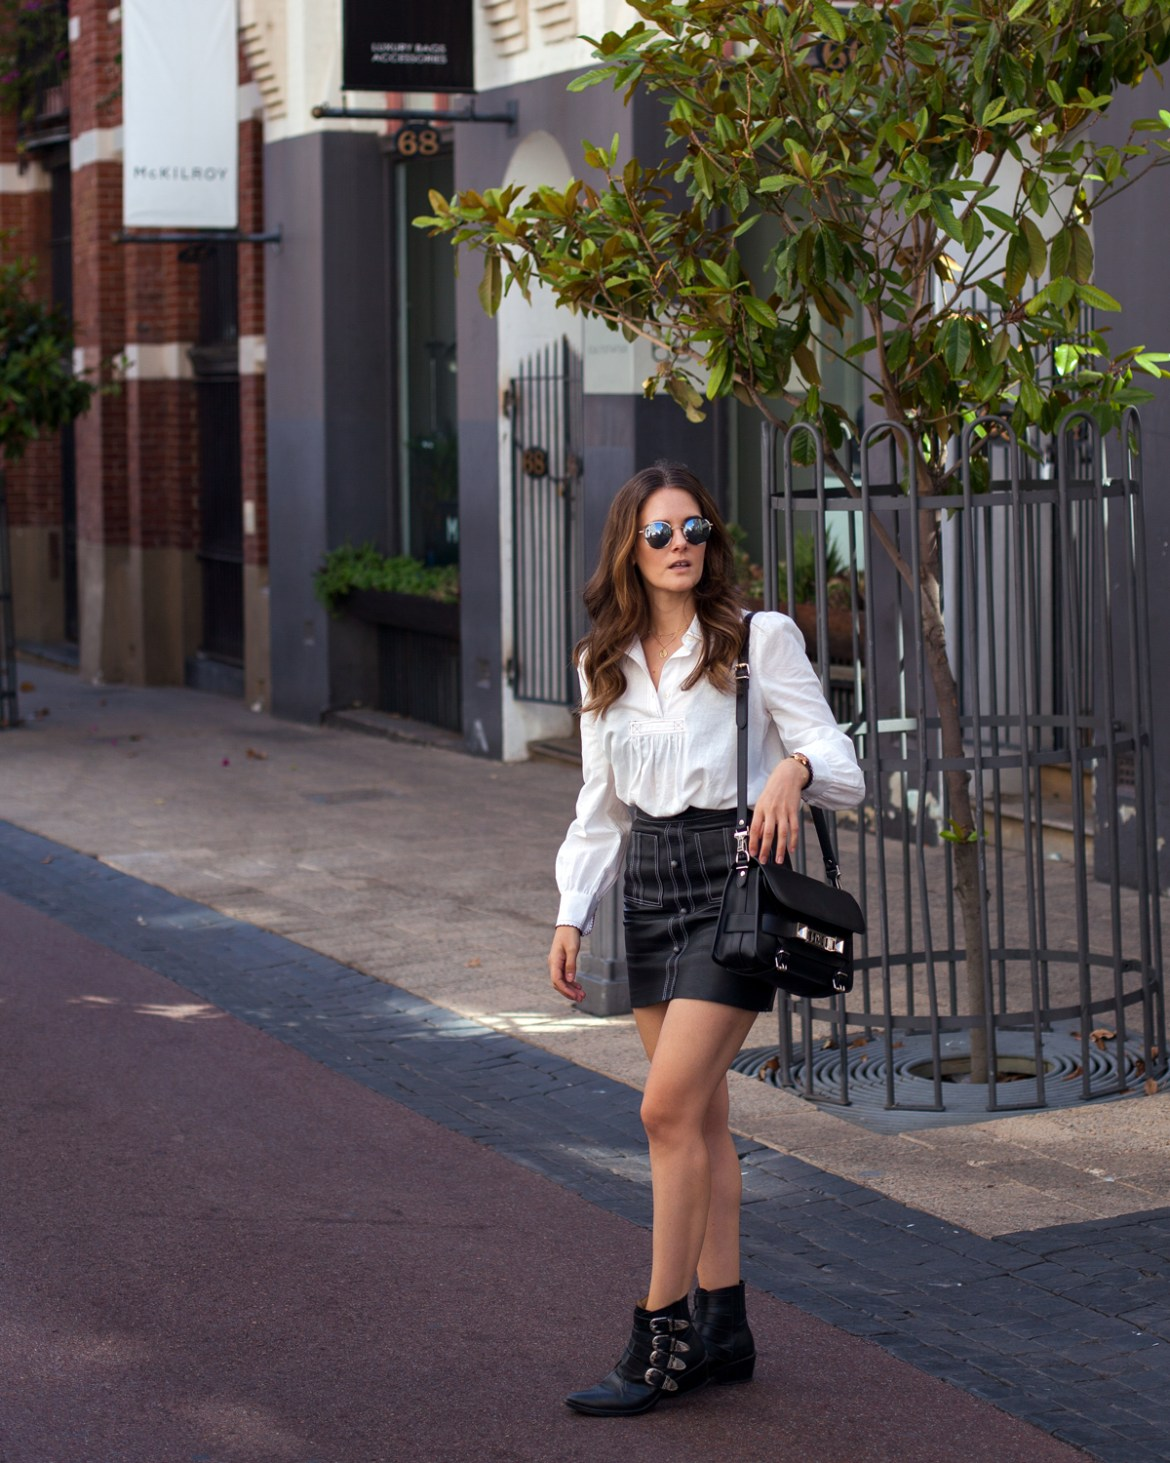 Bohemian Traders blouse, Aje leather mini skirt, Toga Pulla boots, Proenza Schouler Bag and round glasses, street style